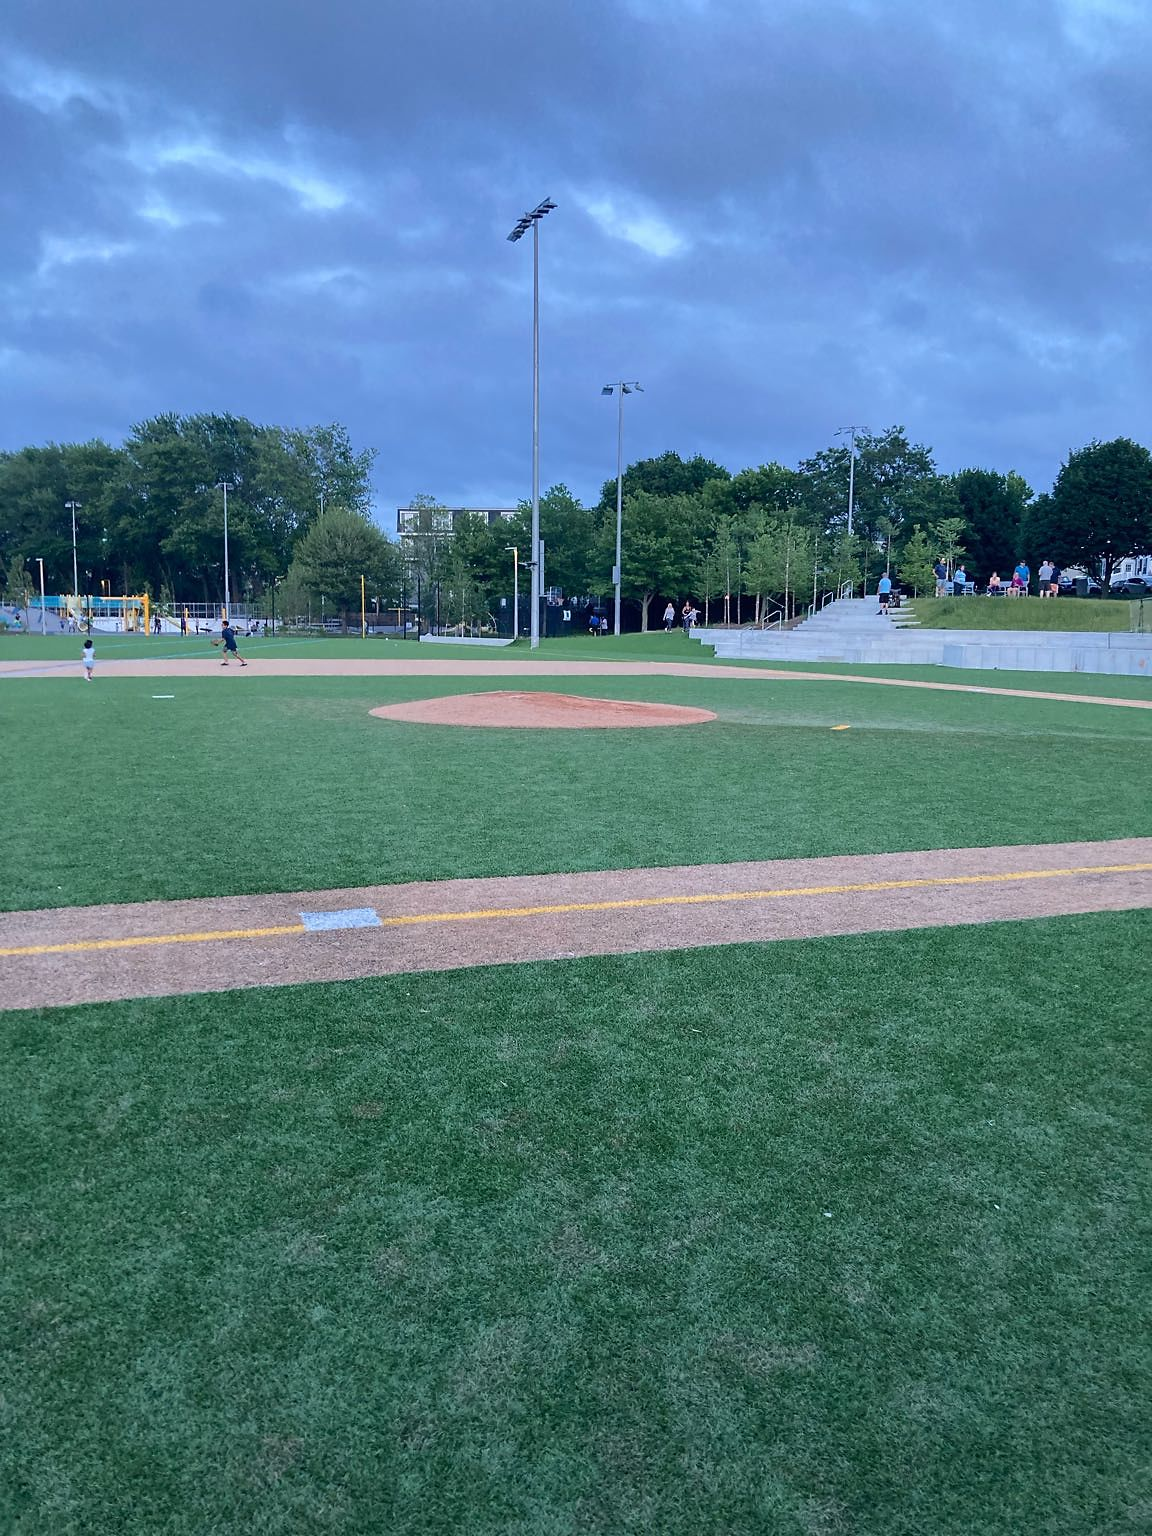 Brand new field in the Dorchester part of the city that the kids can't play at after 6 pm because the lights don't work please investigate